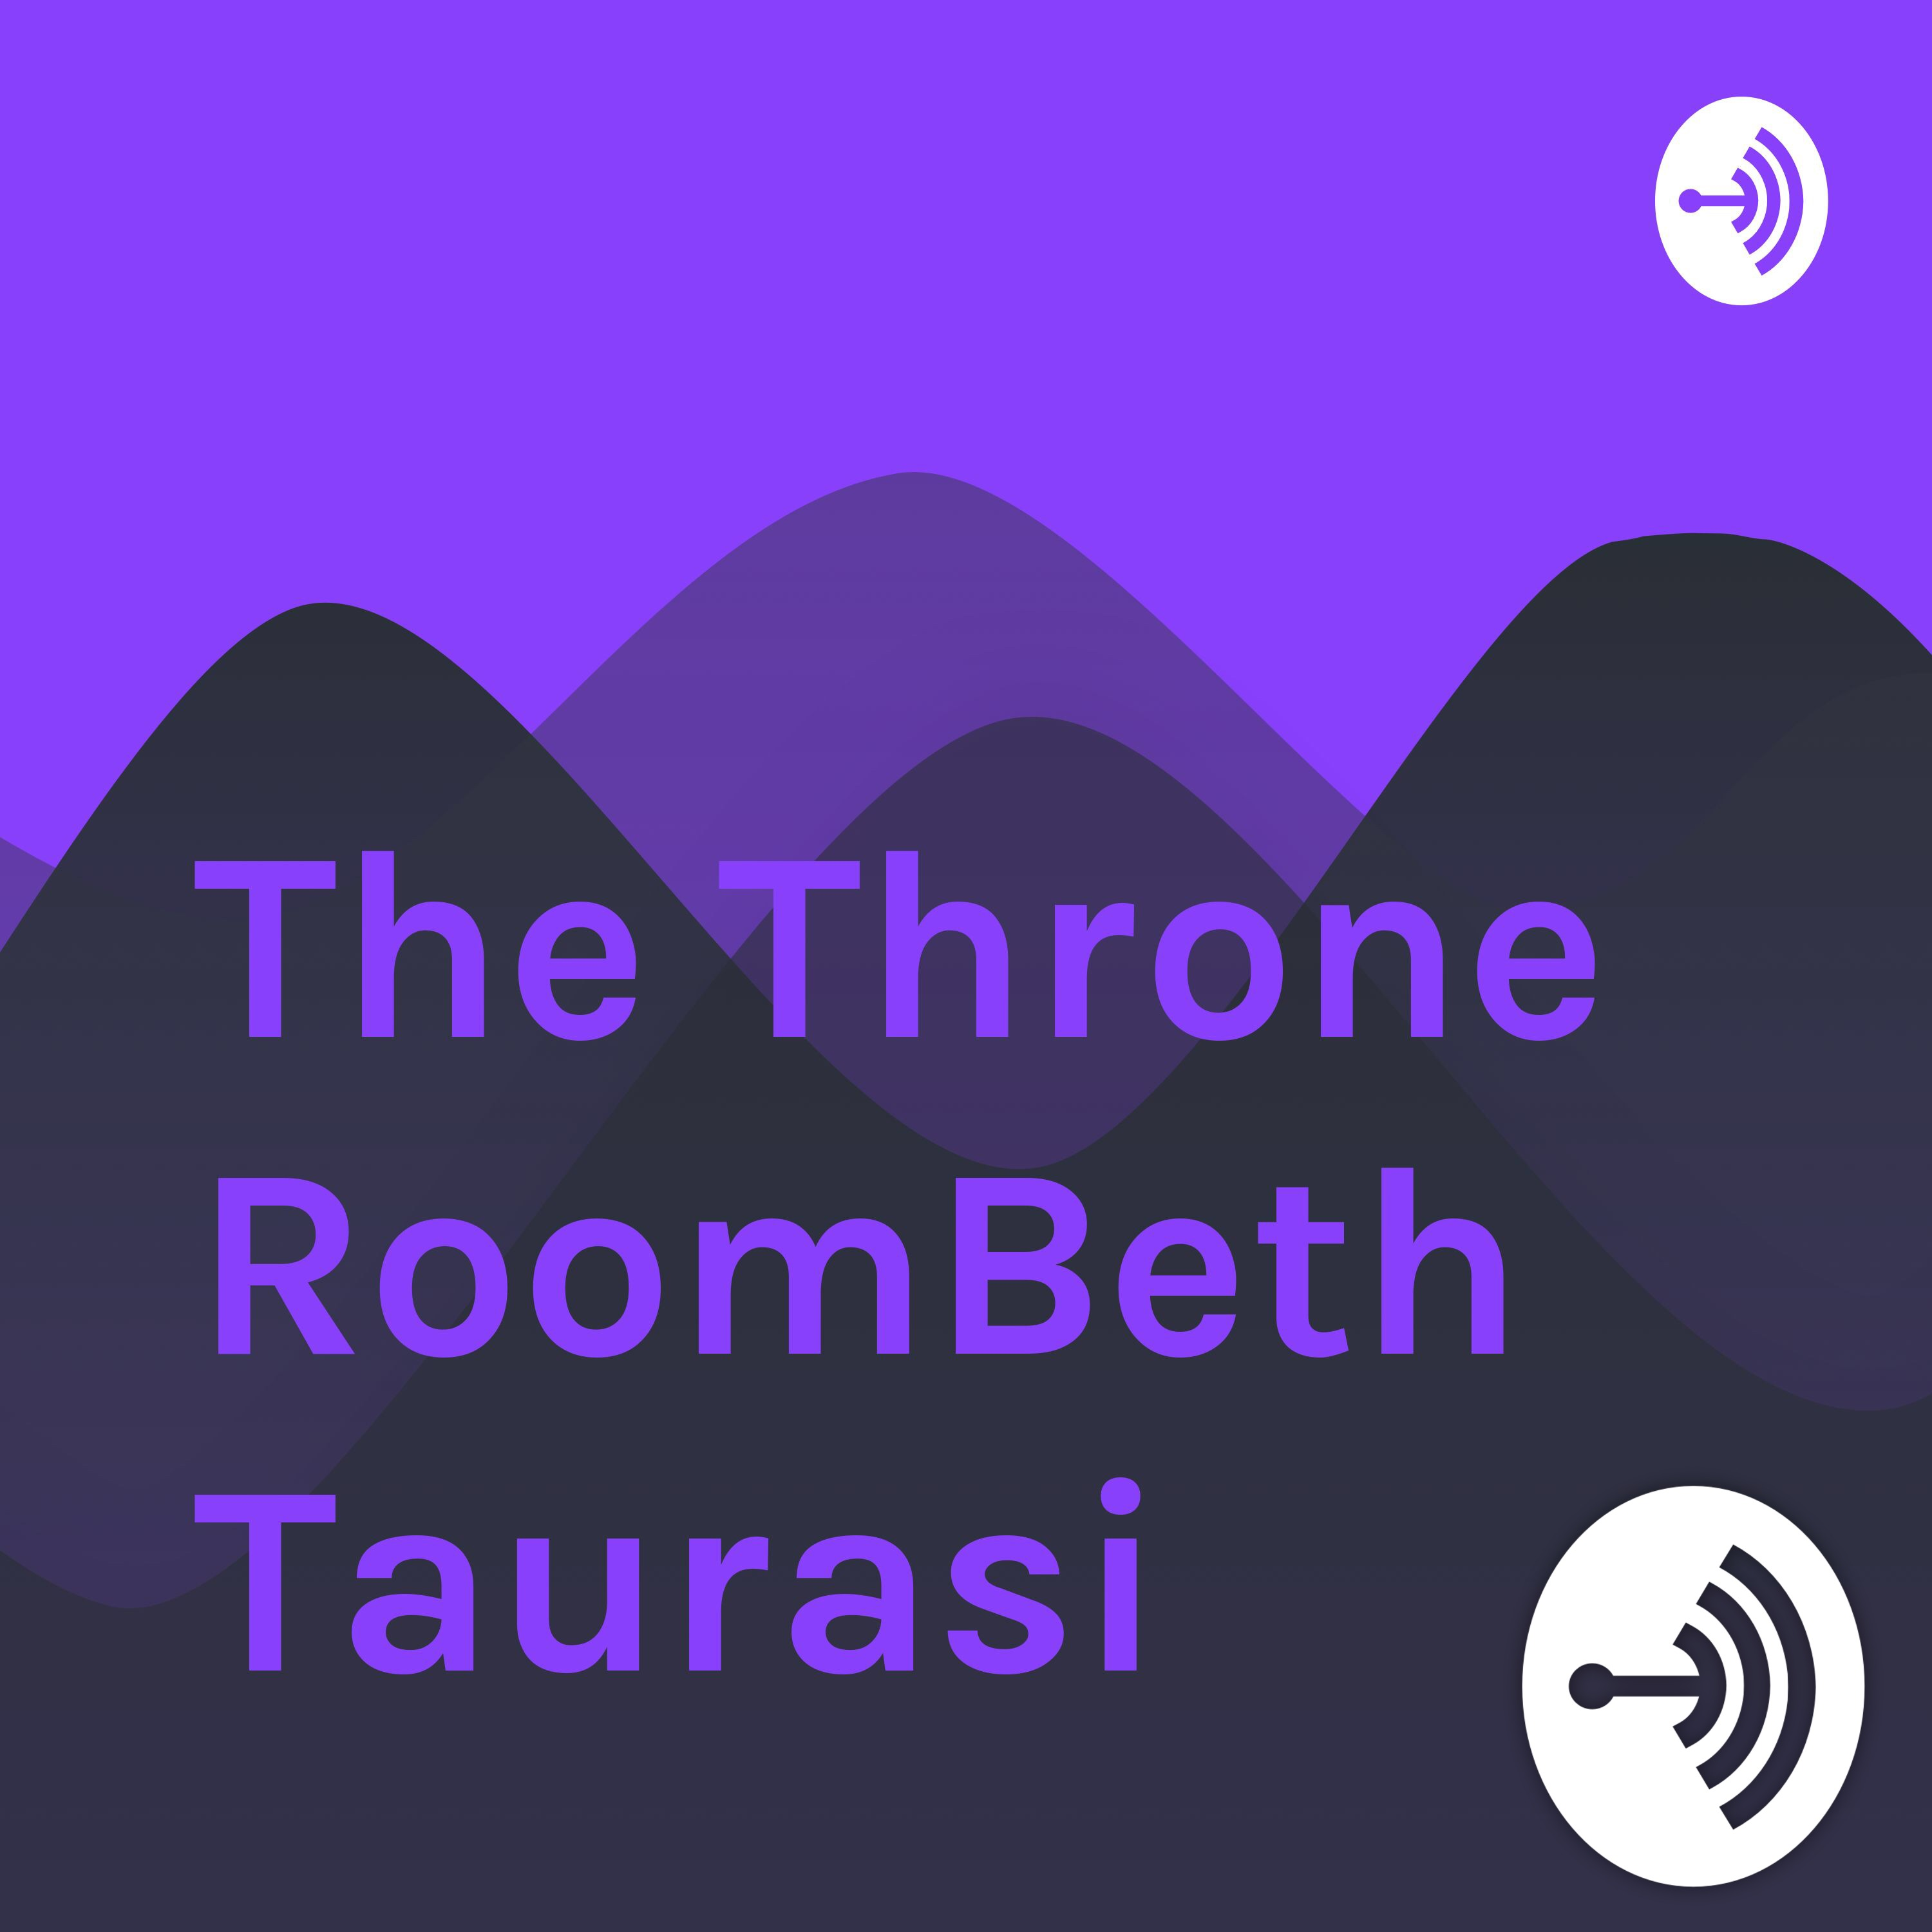 The throne room gets a little stranger